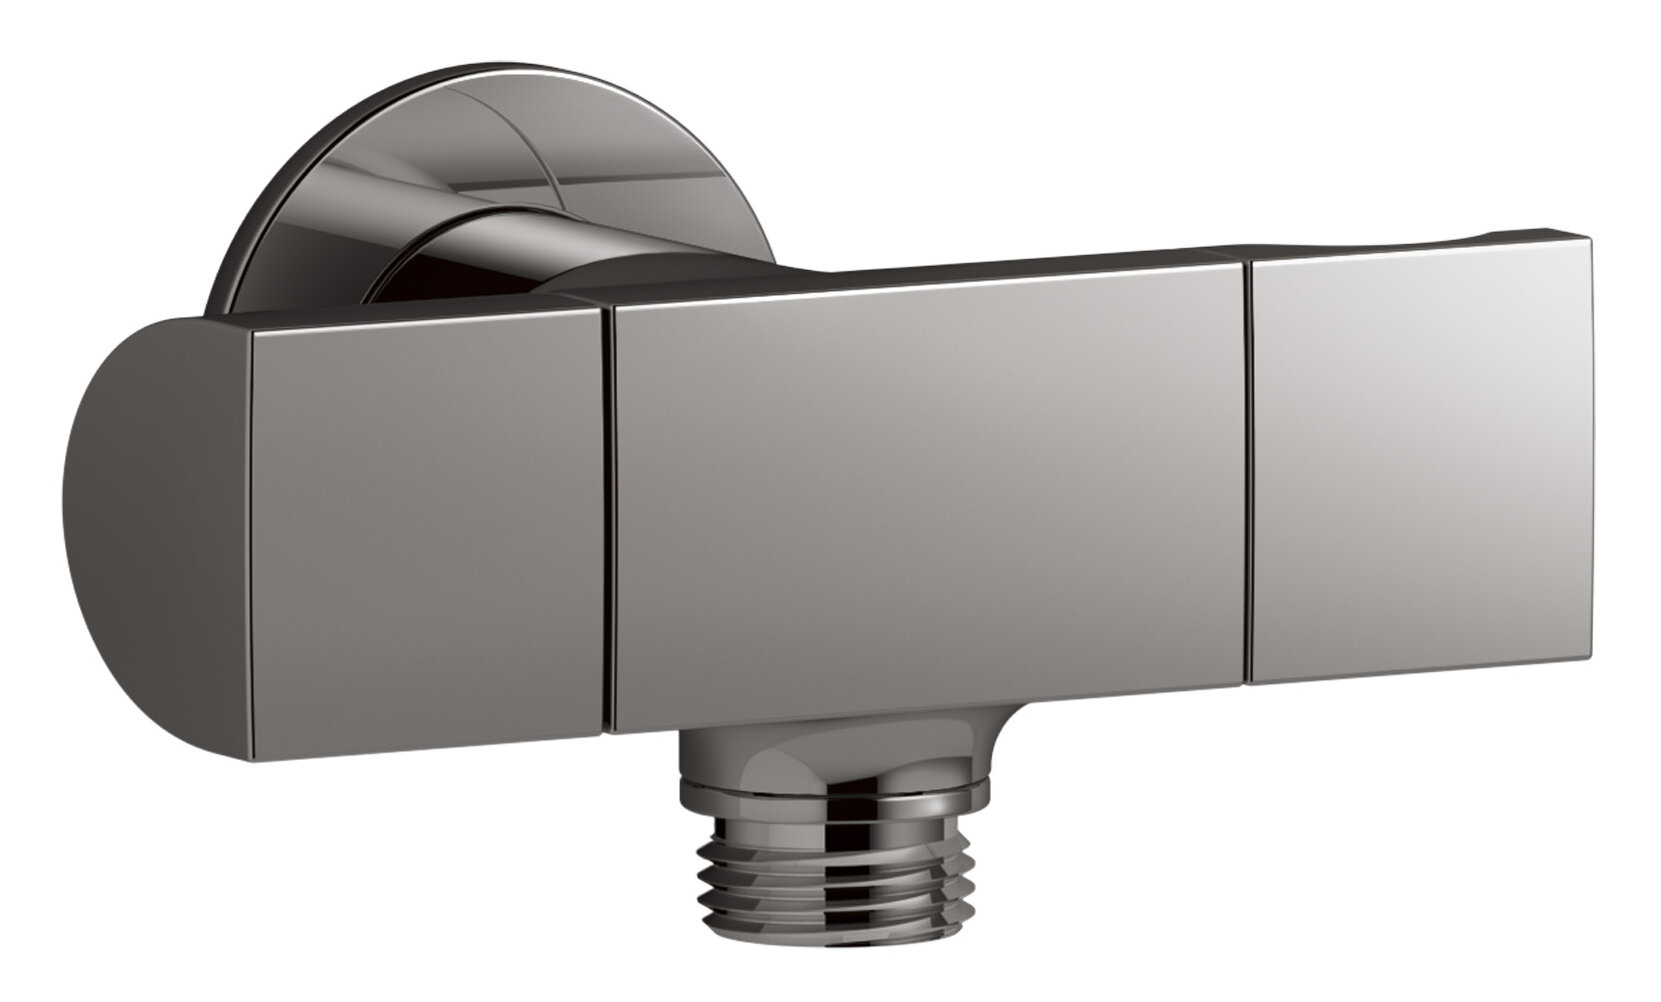 Kohler Exhale Wall Mount Supply Elbow With Bracket And Volume Control Wayfair